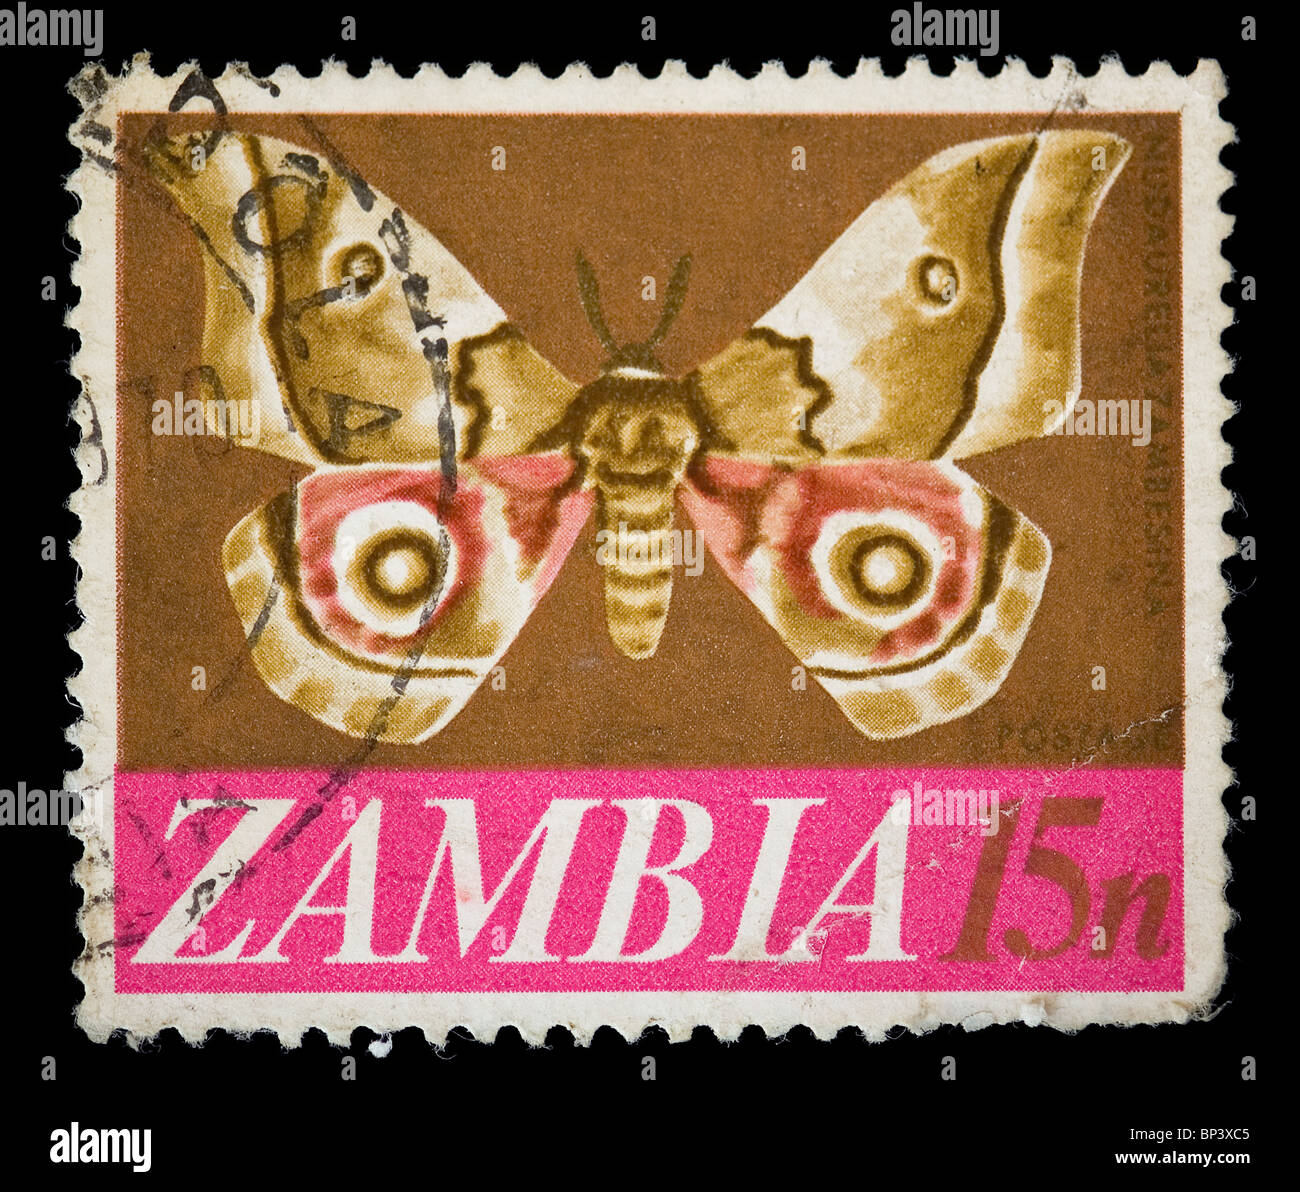 Vintage republic of Zambia postage stamp with butterfly illustration. - Stock Image